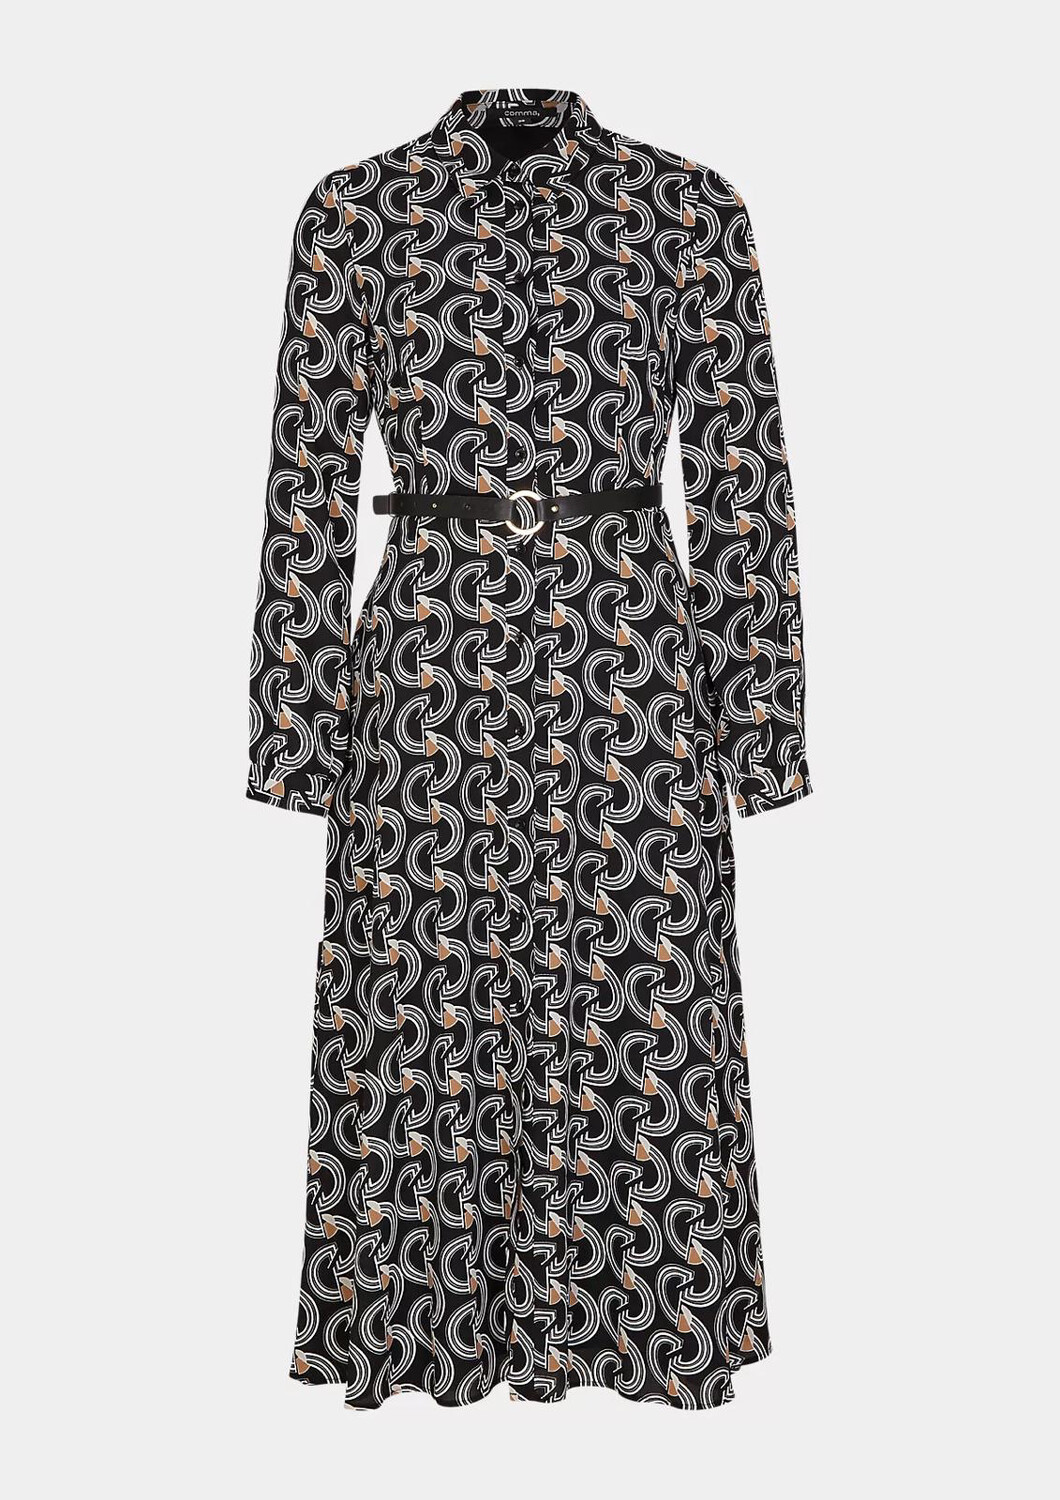 Black, White and Tan Print Belted Shirt Dress